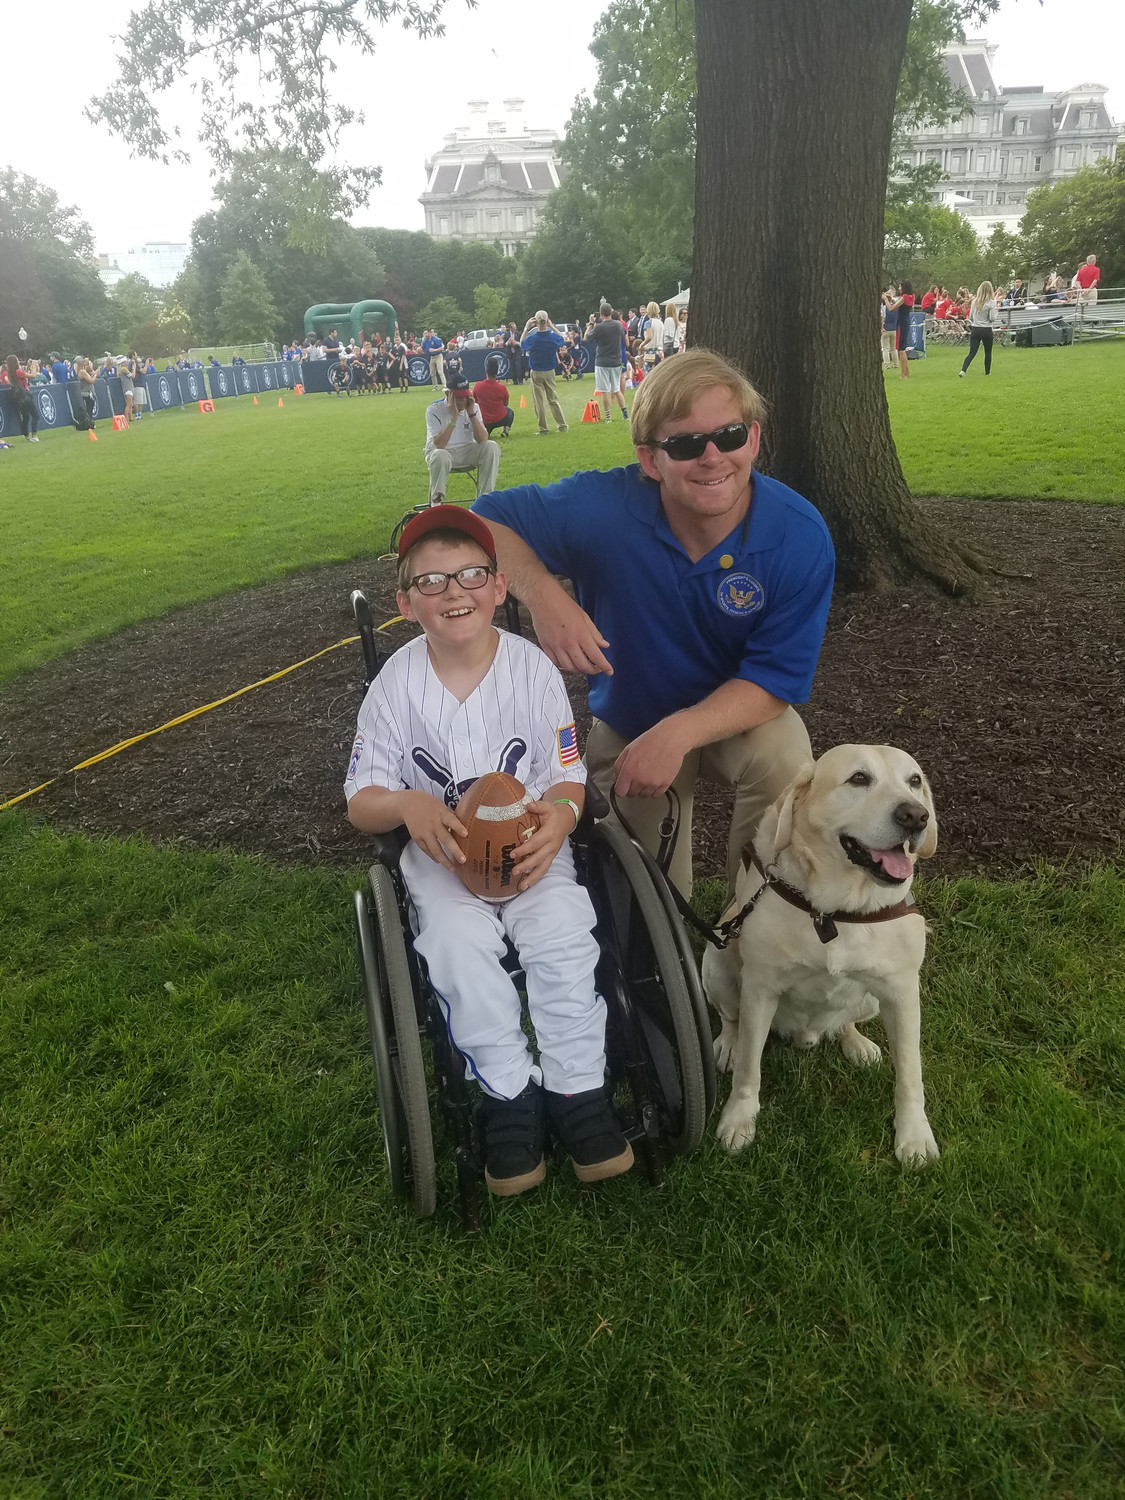 Ethan Whitaker smiles with football player Jake Olson during a White House field day on May 30.